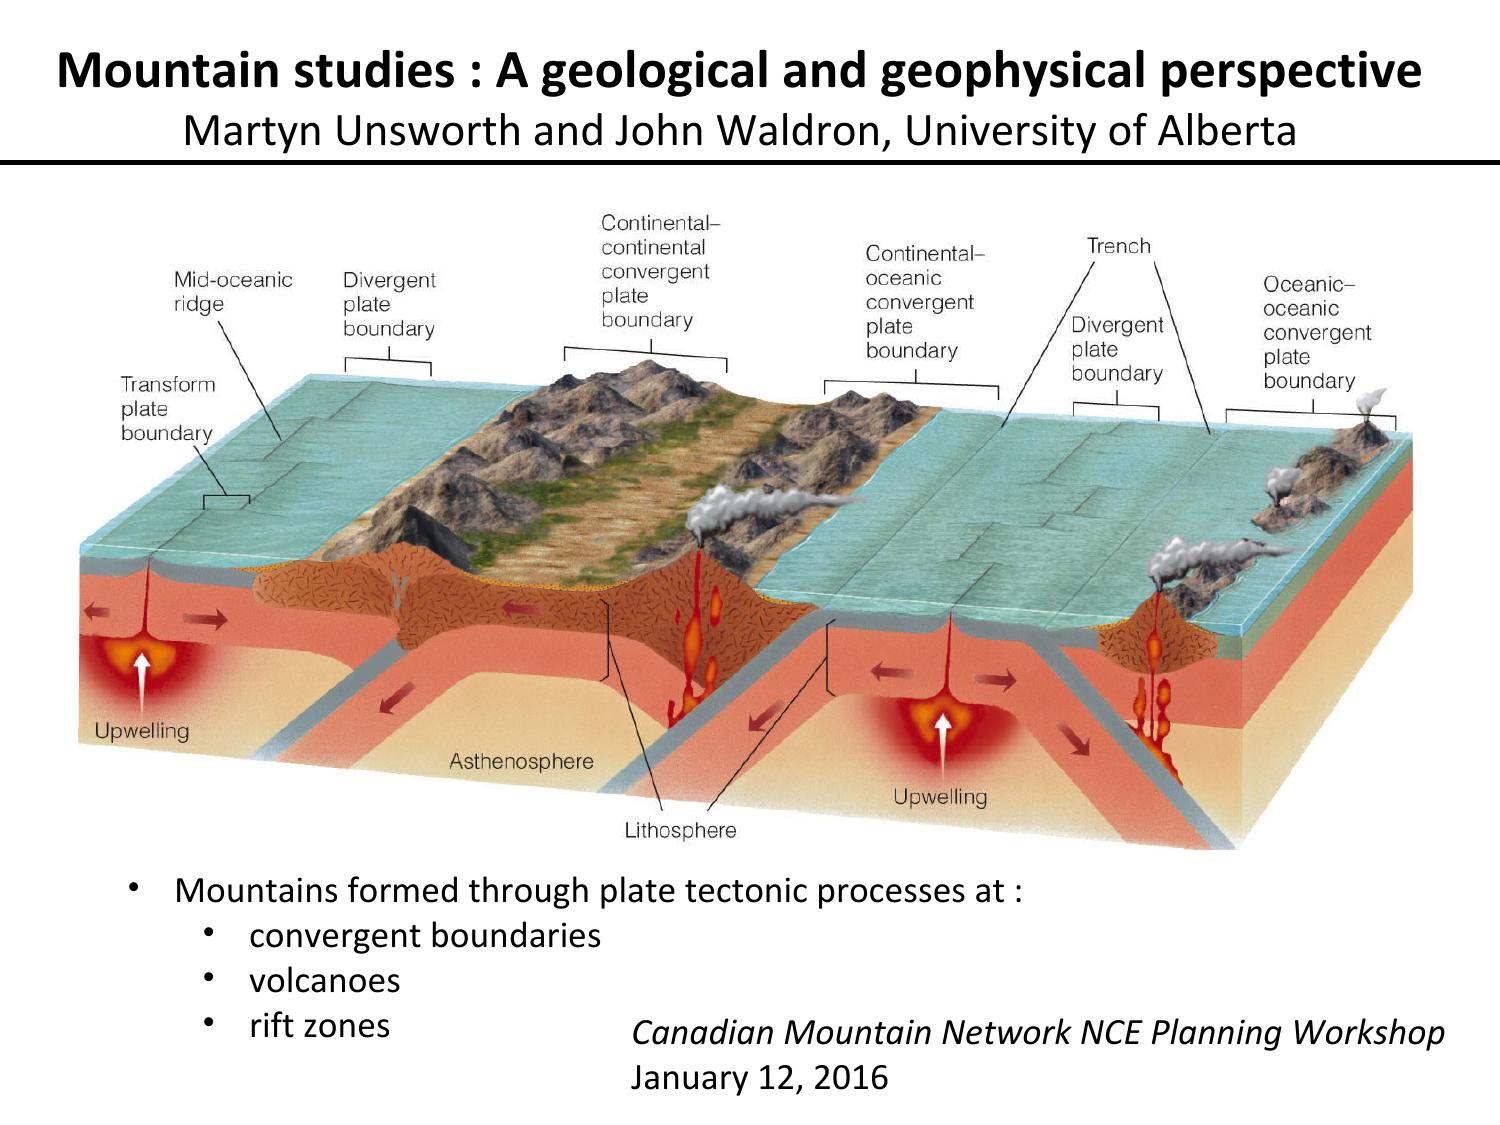 University of alberta mountain studies a geological and university of alberta mountain studies a geological and geophysical perspective by canadian mountain network nce planning group issuu pooptronica